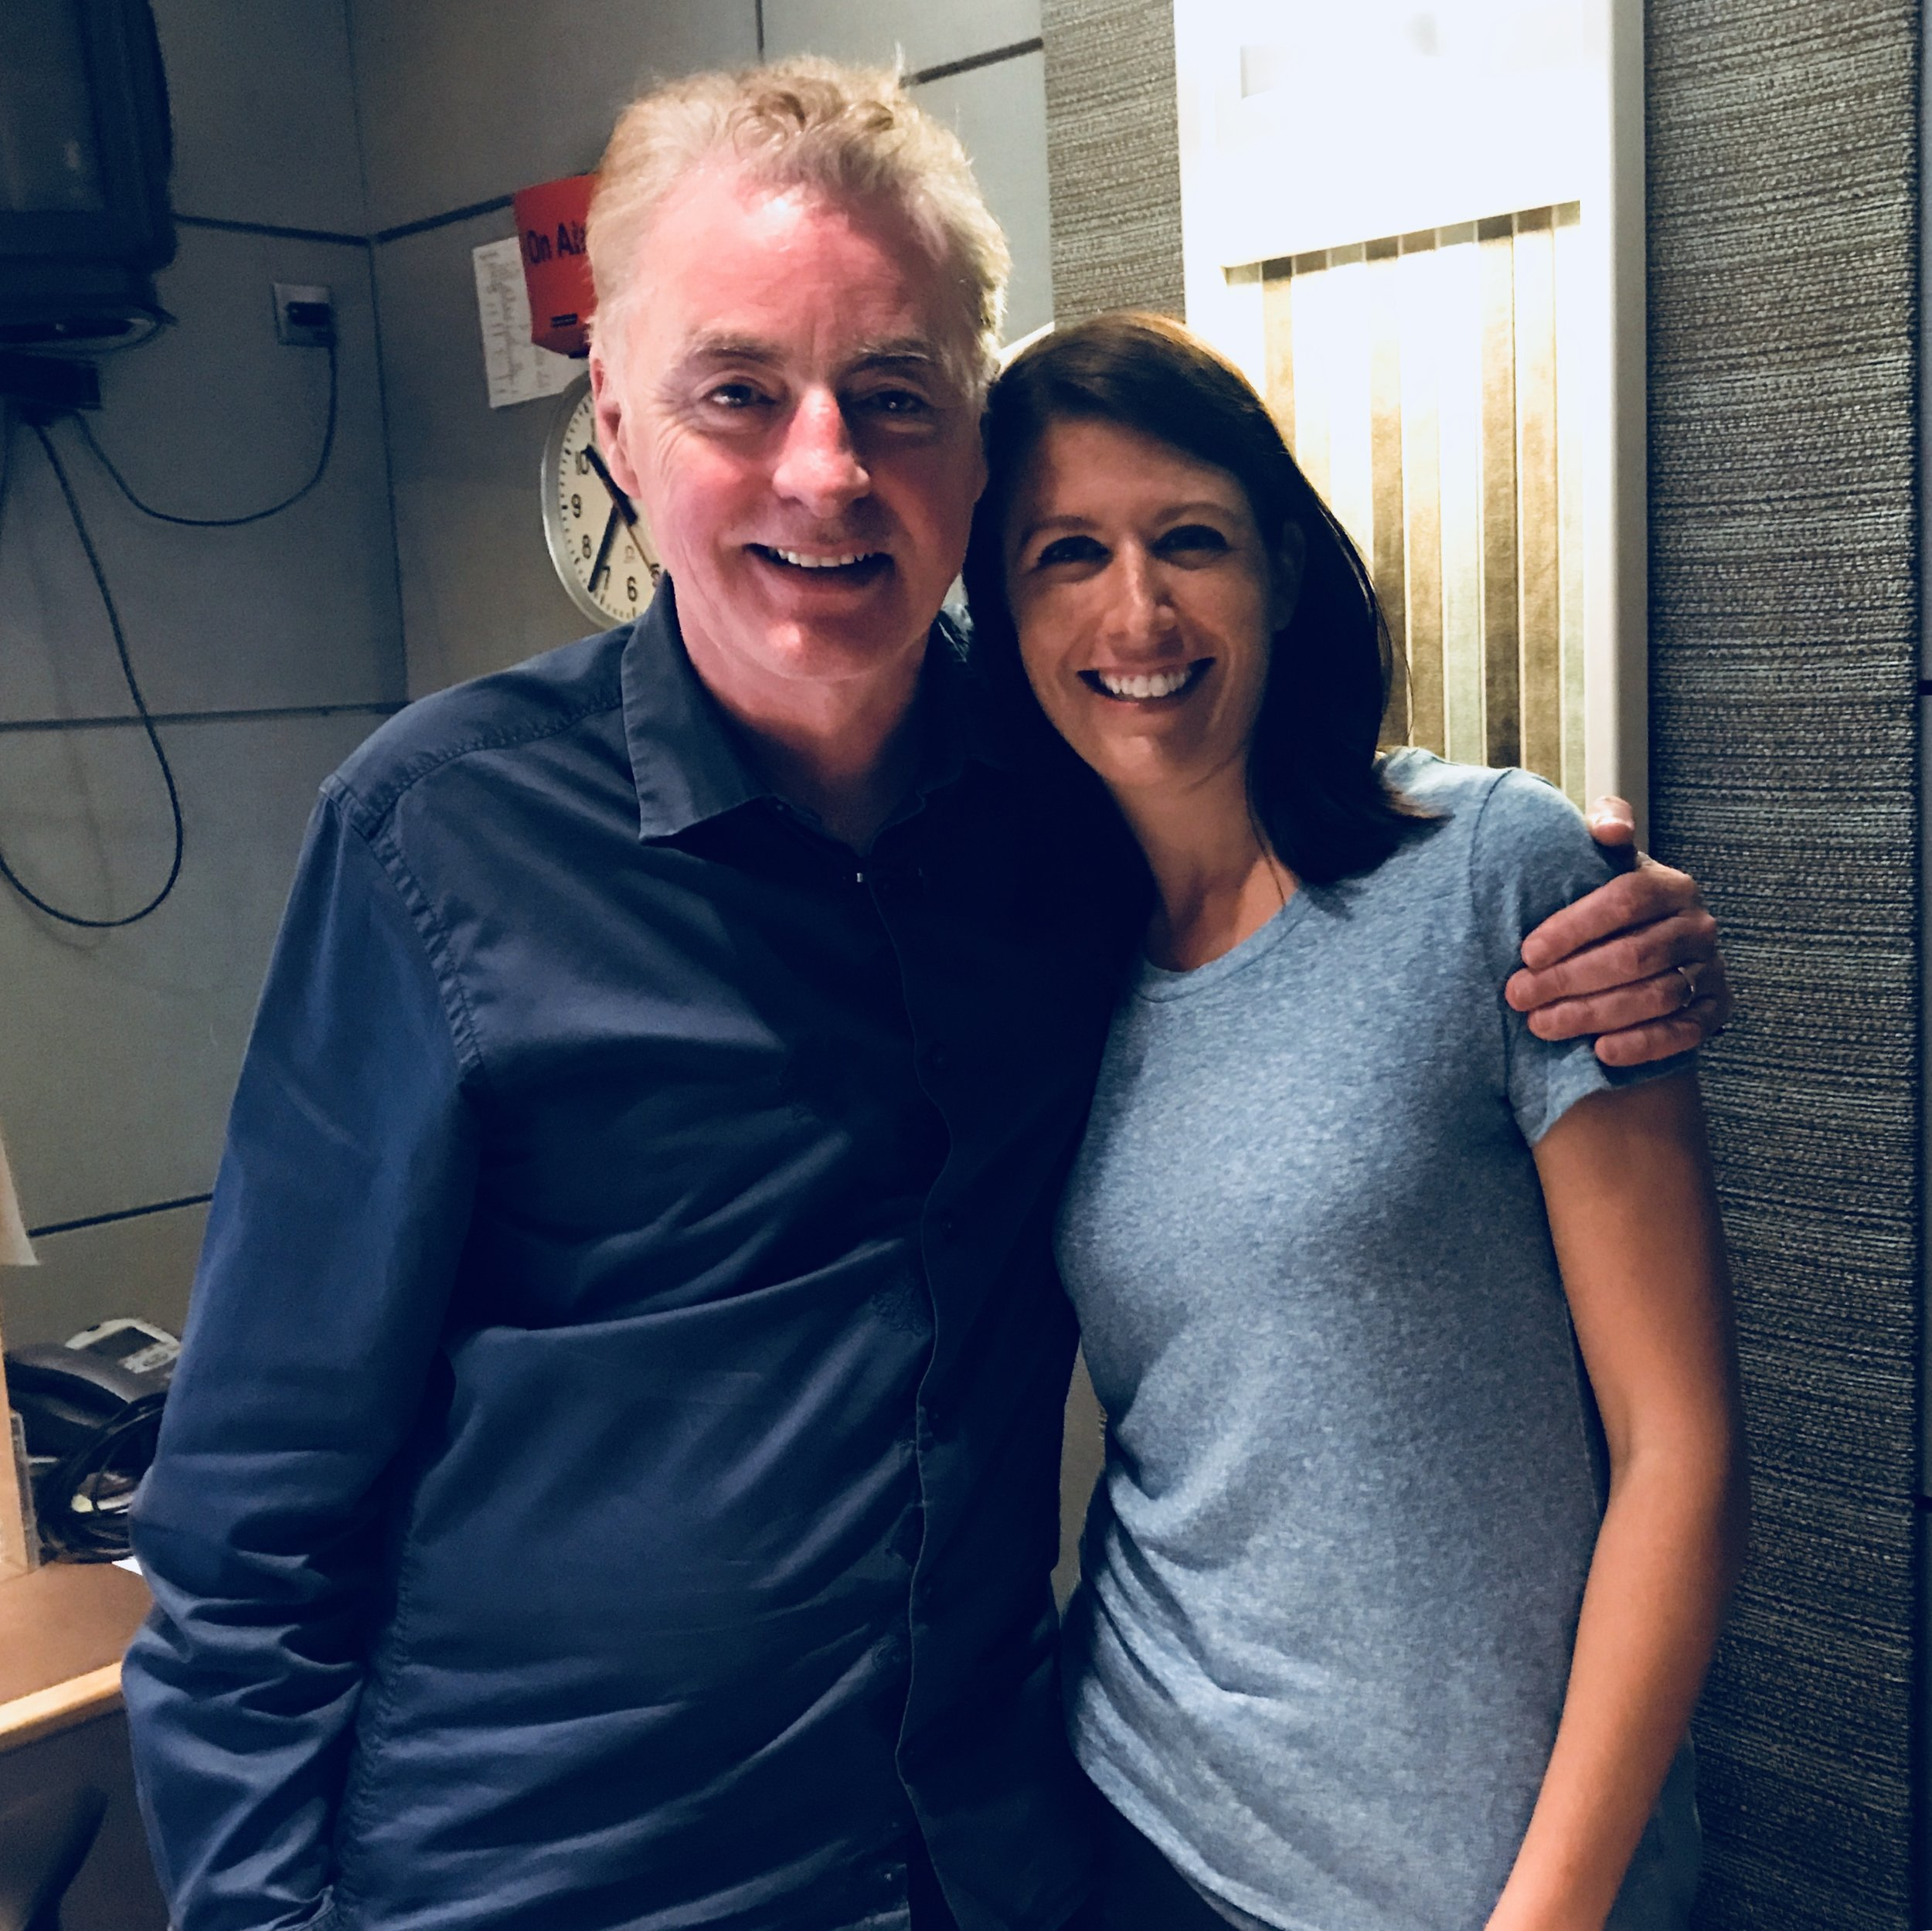 With Dave Fanning, the first DJ to play U2 on the radio July 17, 2017 in Dublin, Ireland. Photo Credit: David Barry